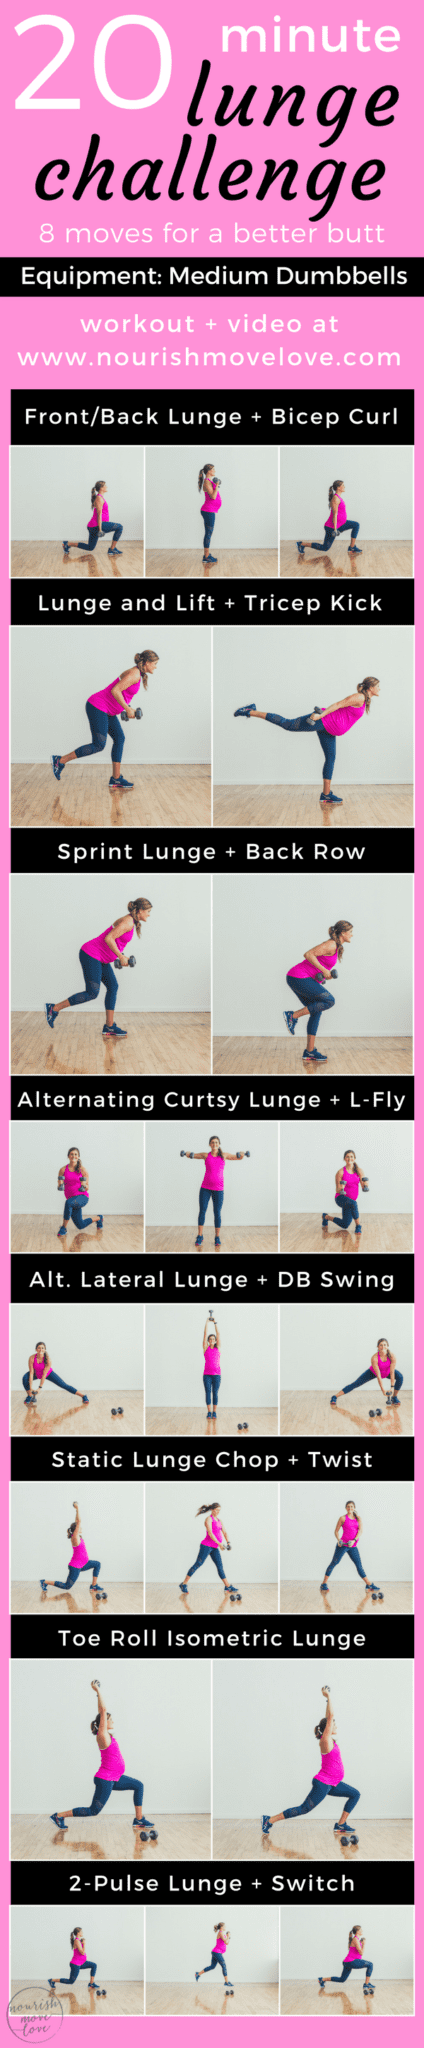 20 minute lunge challenge for a better butt | www.nourishmovelove.com